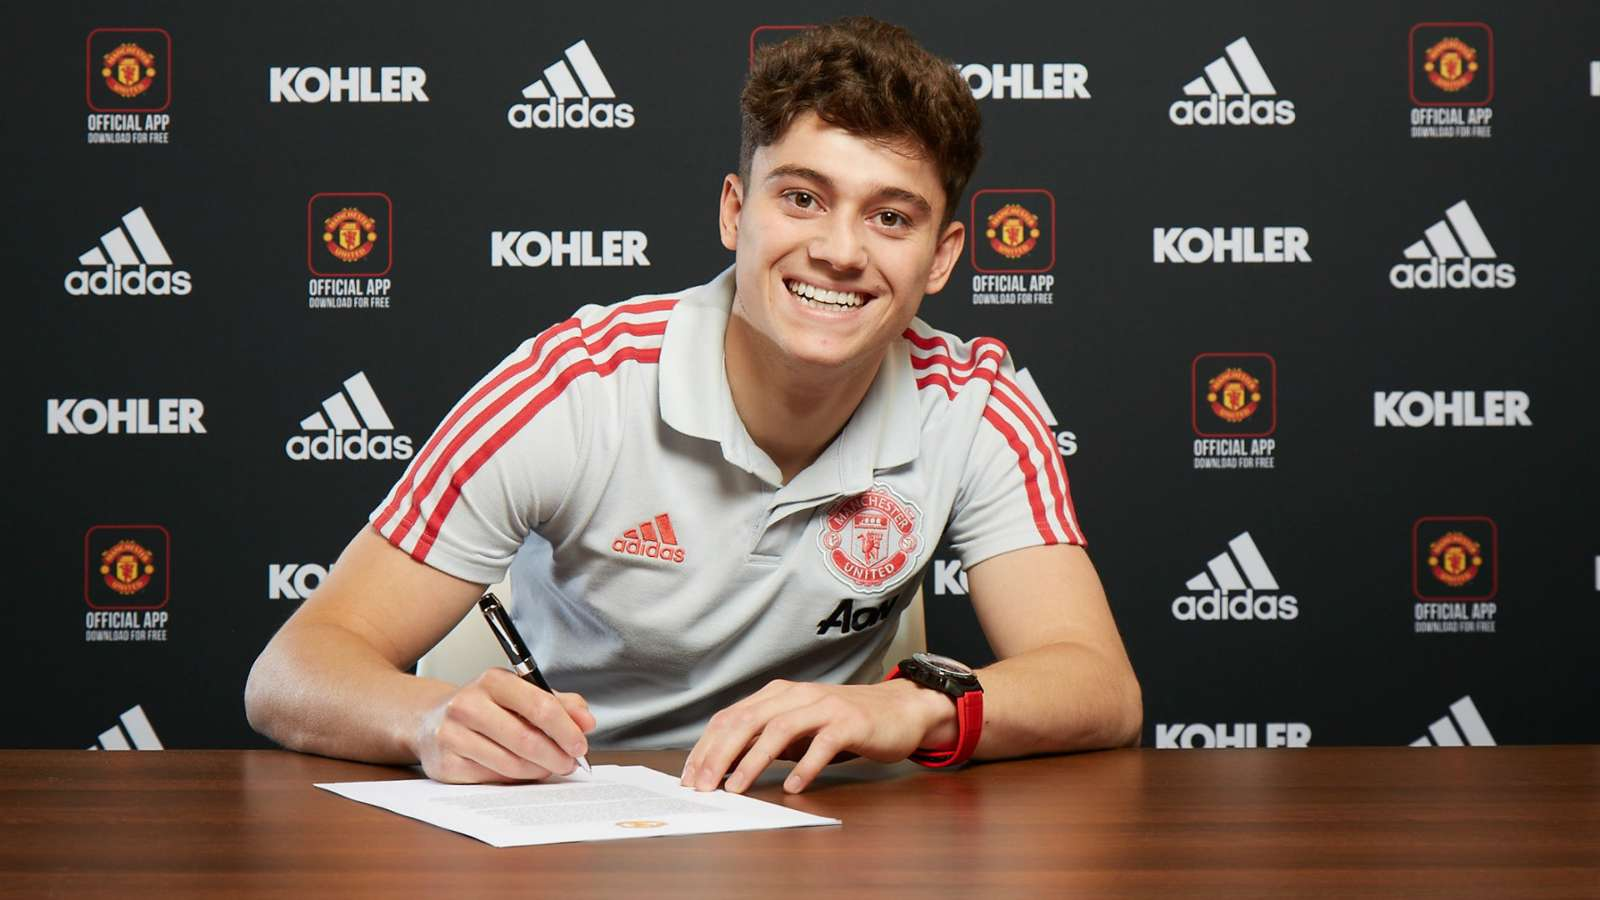 daniel-james-manchester-united_13eecx0fo124e1t8lt053opmvr